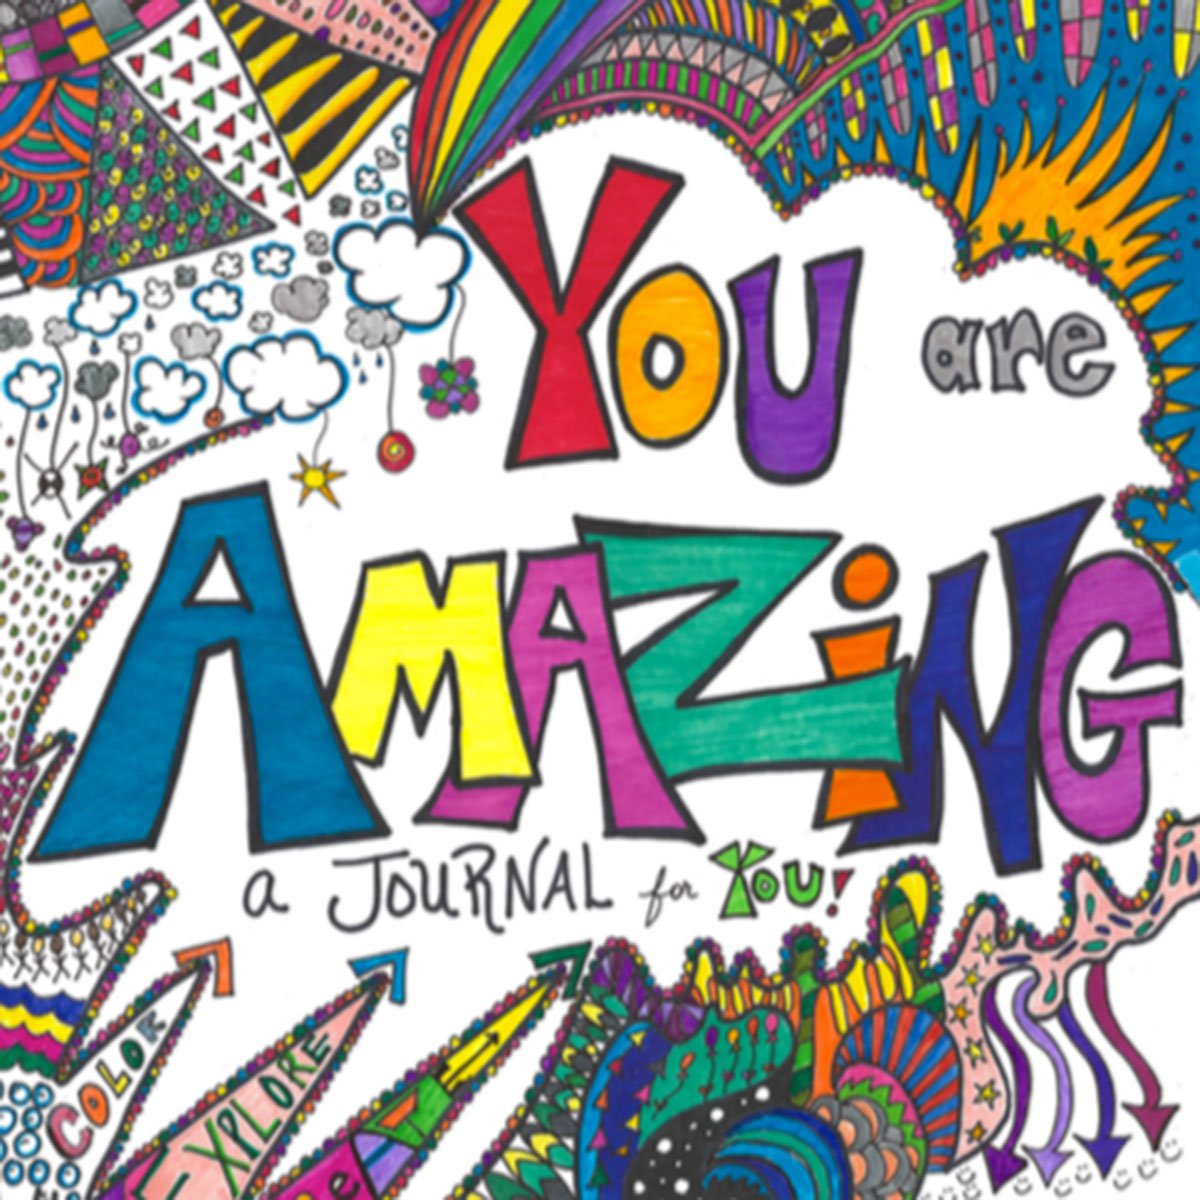 You Are Amazing Journal